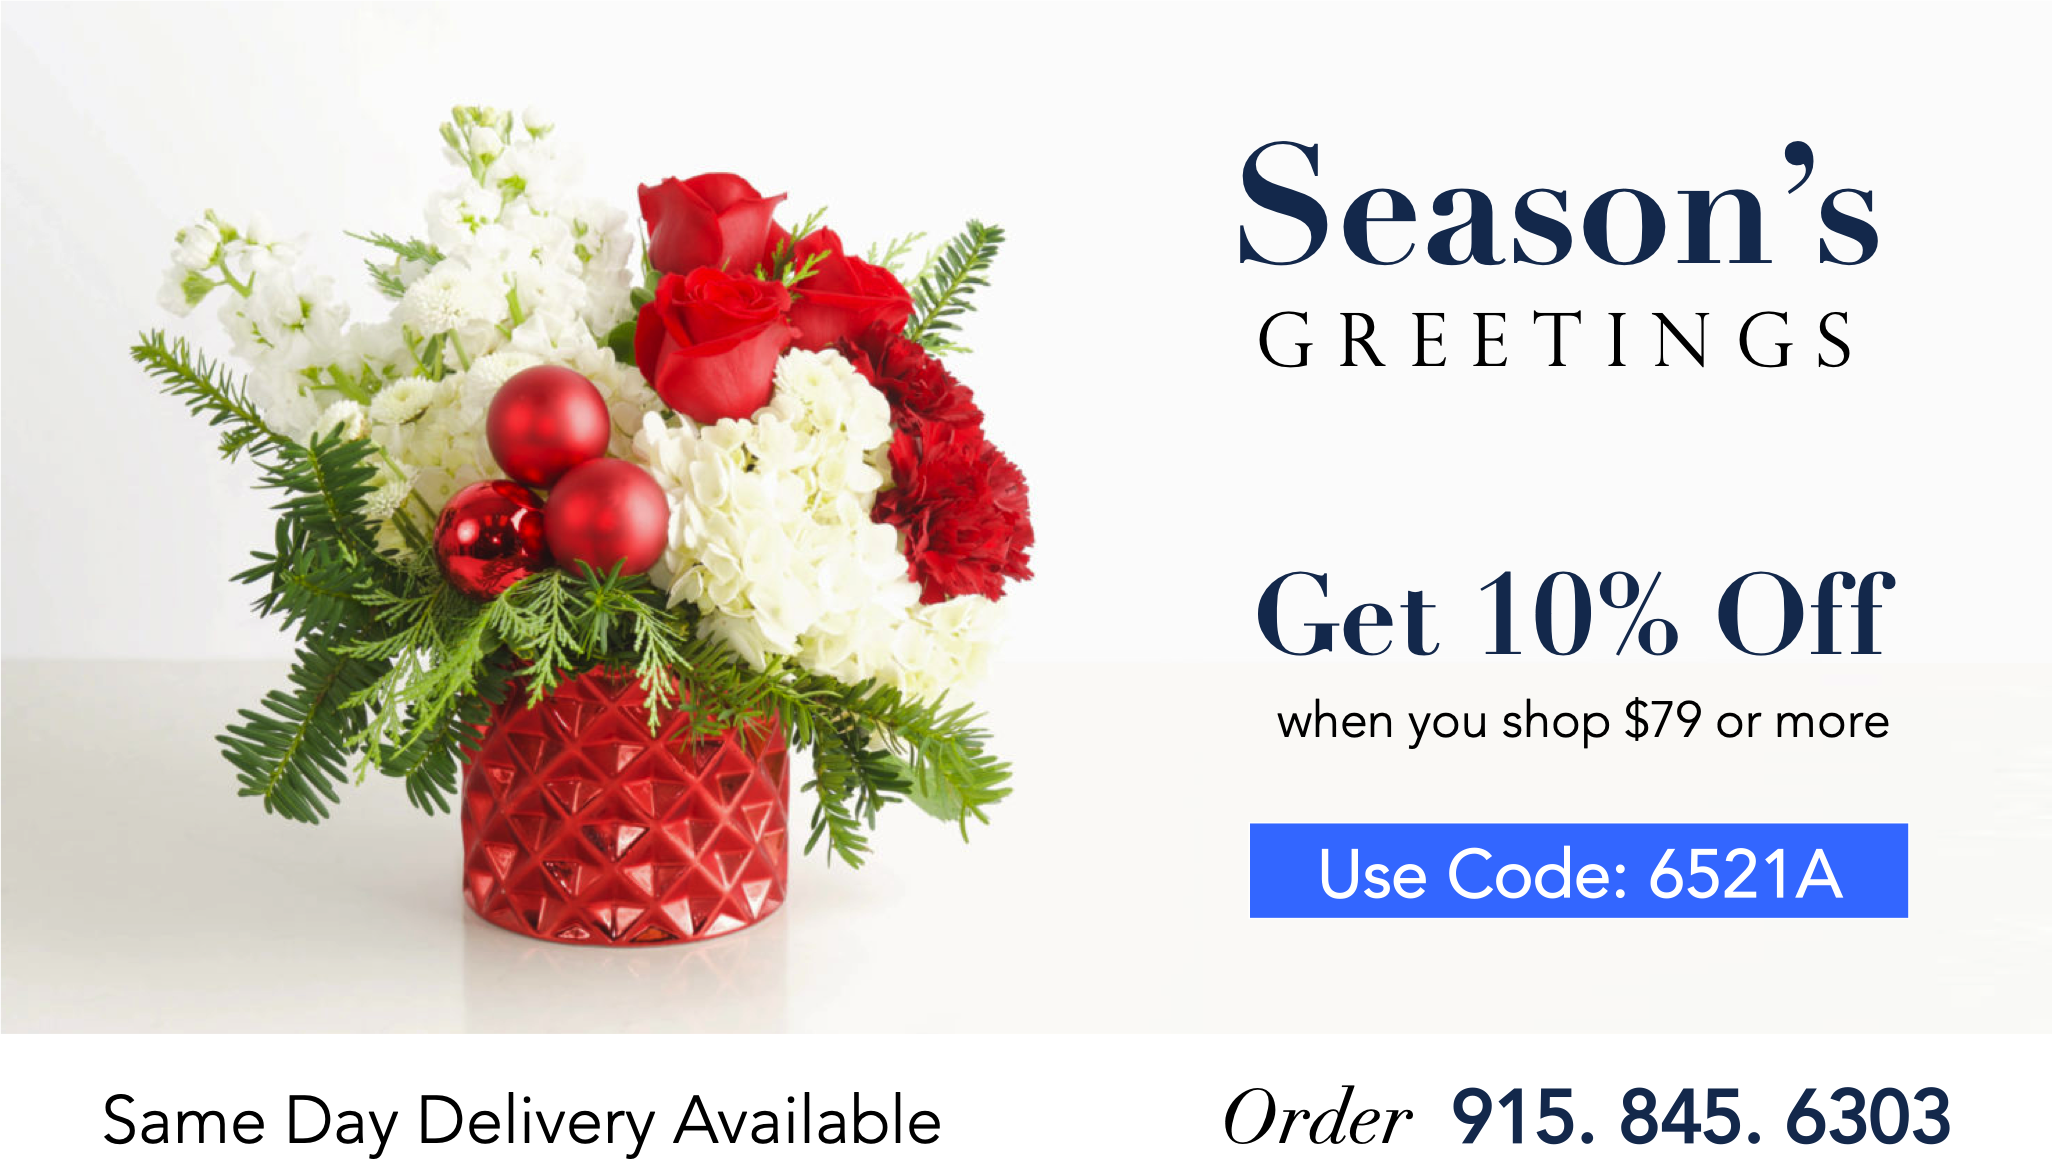 2angies-floraldesign-christmas-arrangement-cranberry-floral-designs-el-paso-texas-florist-79912-angies-flower-flowershop-flores-el-paso-flowers-79912-angies-floral-christmas-centerpieces-christmas-arrangements-christmas-flowers-holiday-gifts.jpg.png